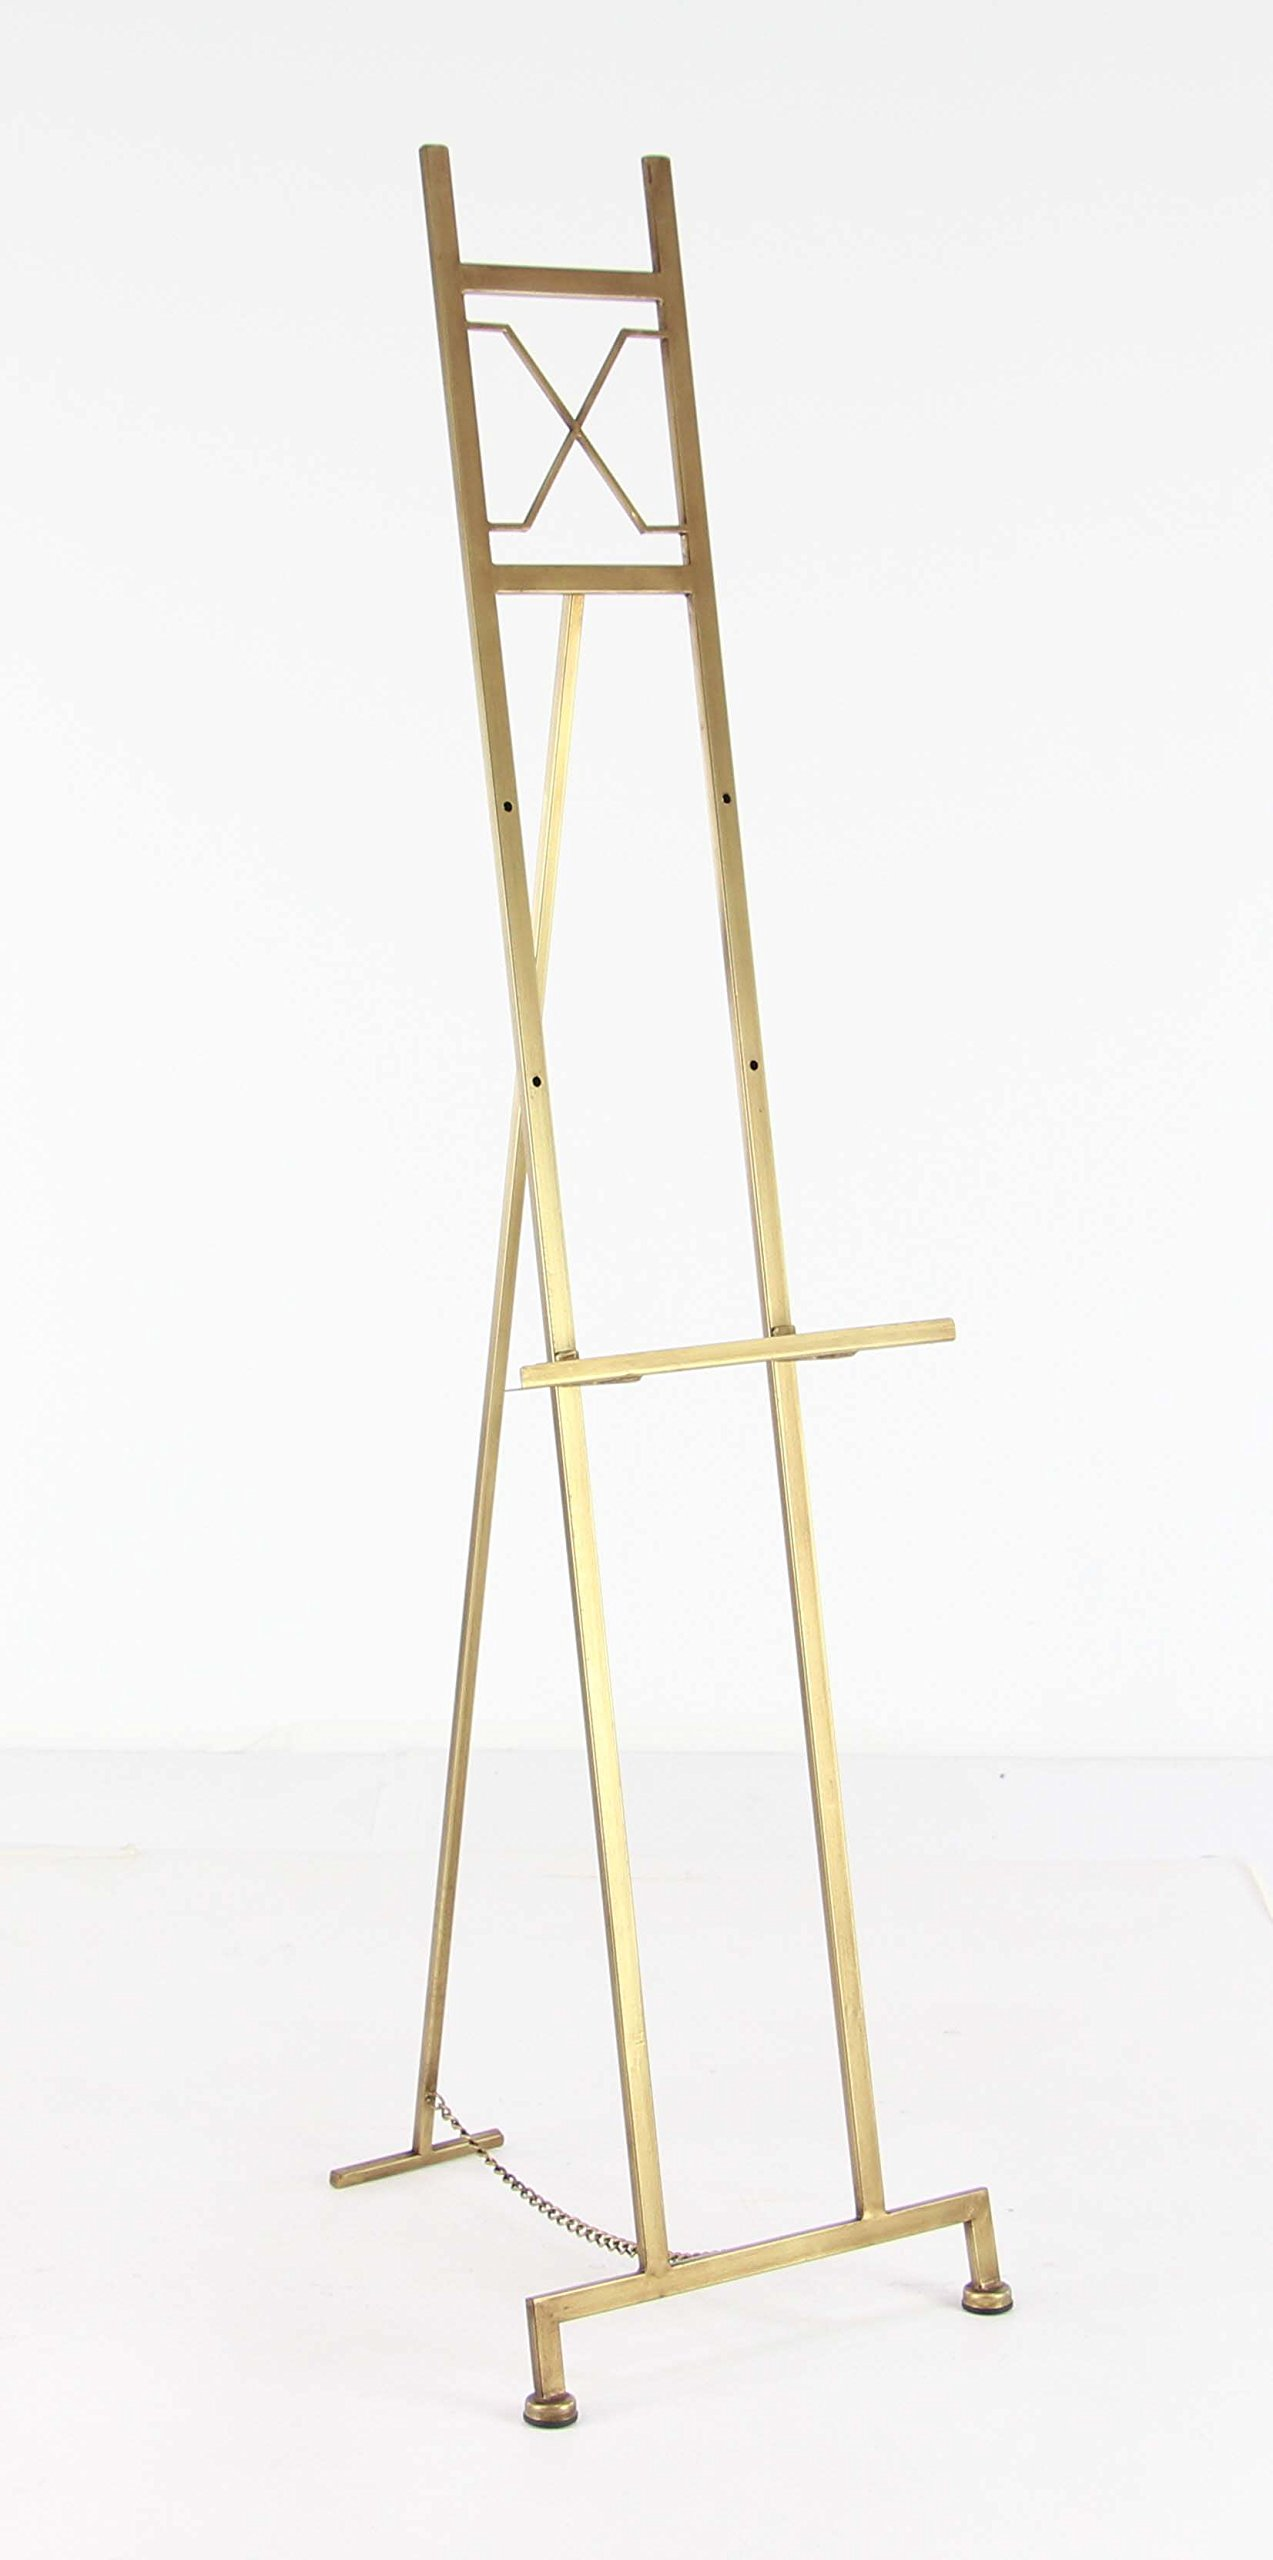 Deco 79 45840 Contemporary Elegant Metal Easel, 57''H x 17''L, Smooth Gold Finish by Deco 79